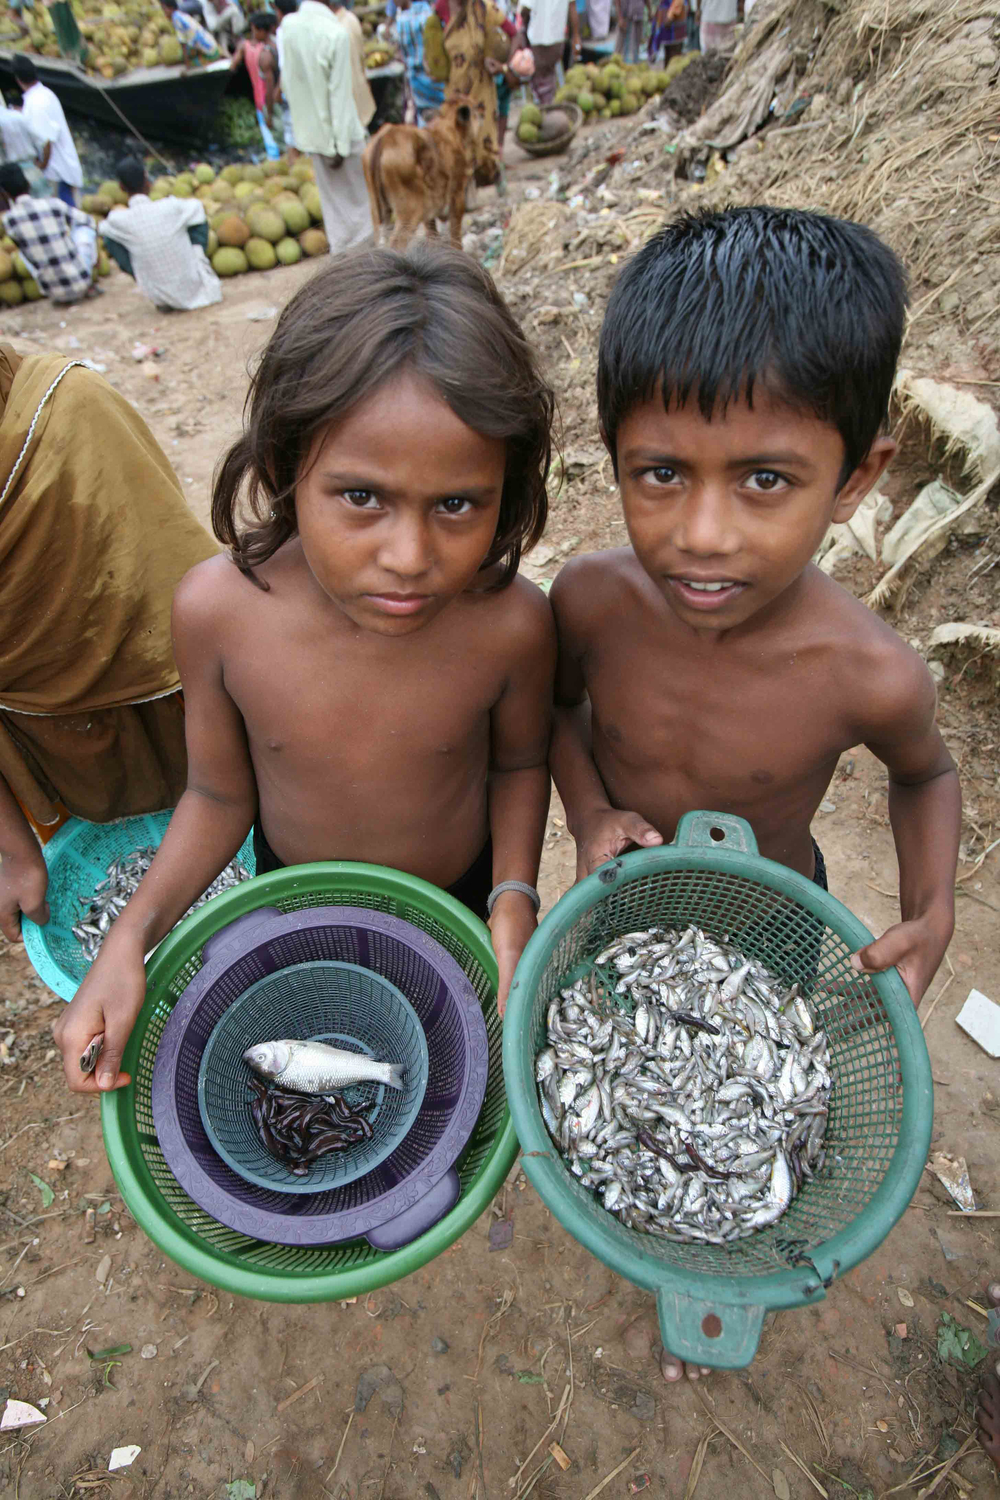 Children at the local market display fish for sale in Dhaka, Bangladesh, July 2007. More than 400,000 children in the city of Dhaka work from dawn until dusk each day to help support their families.